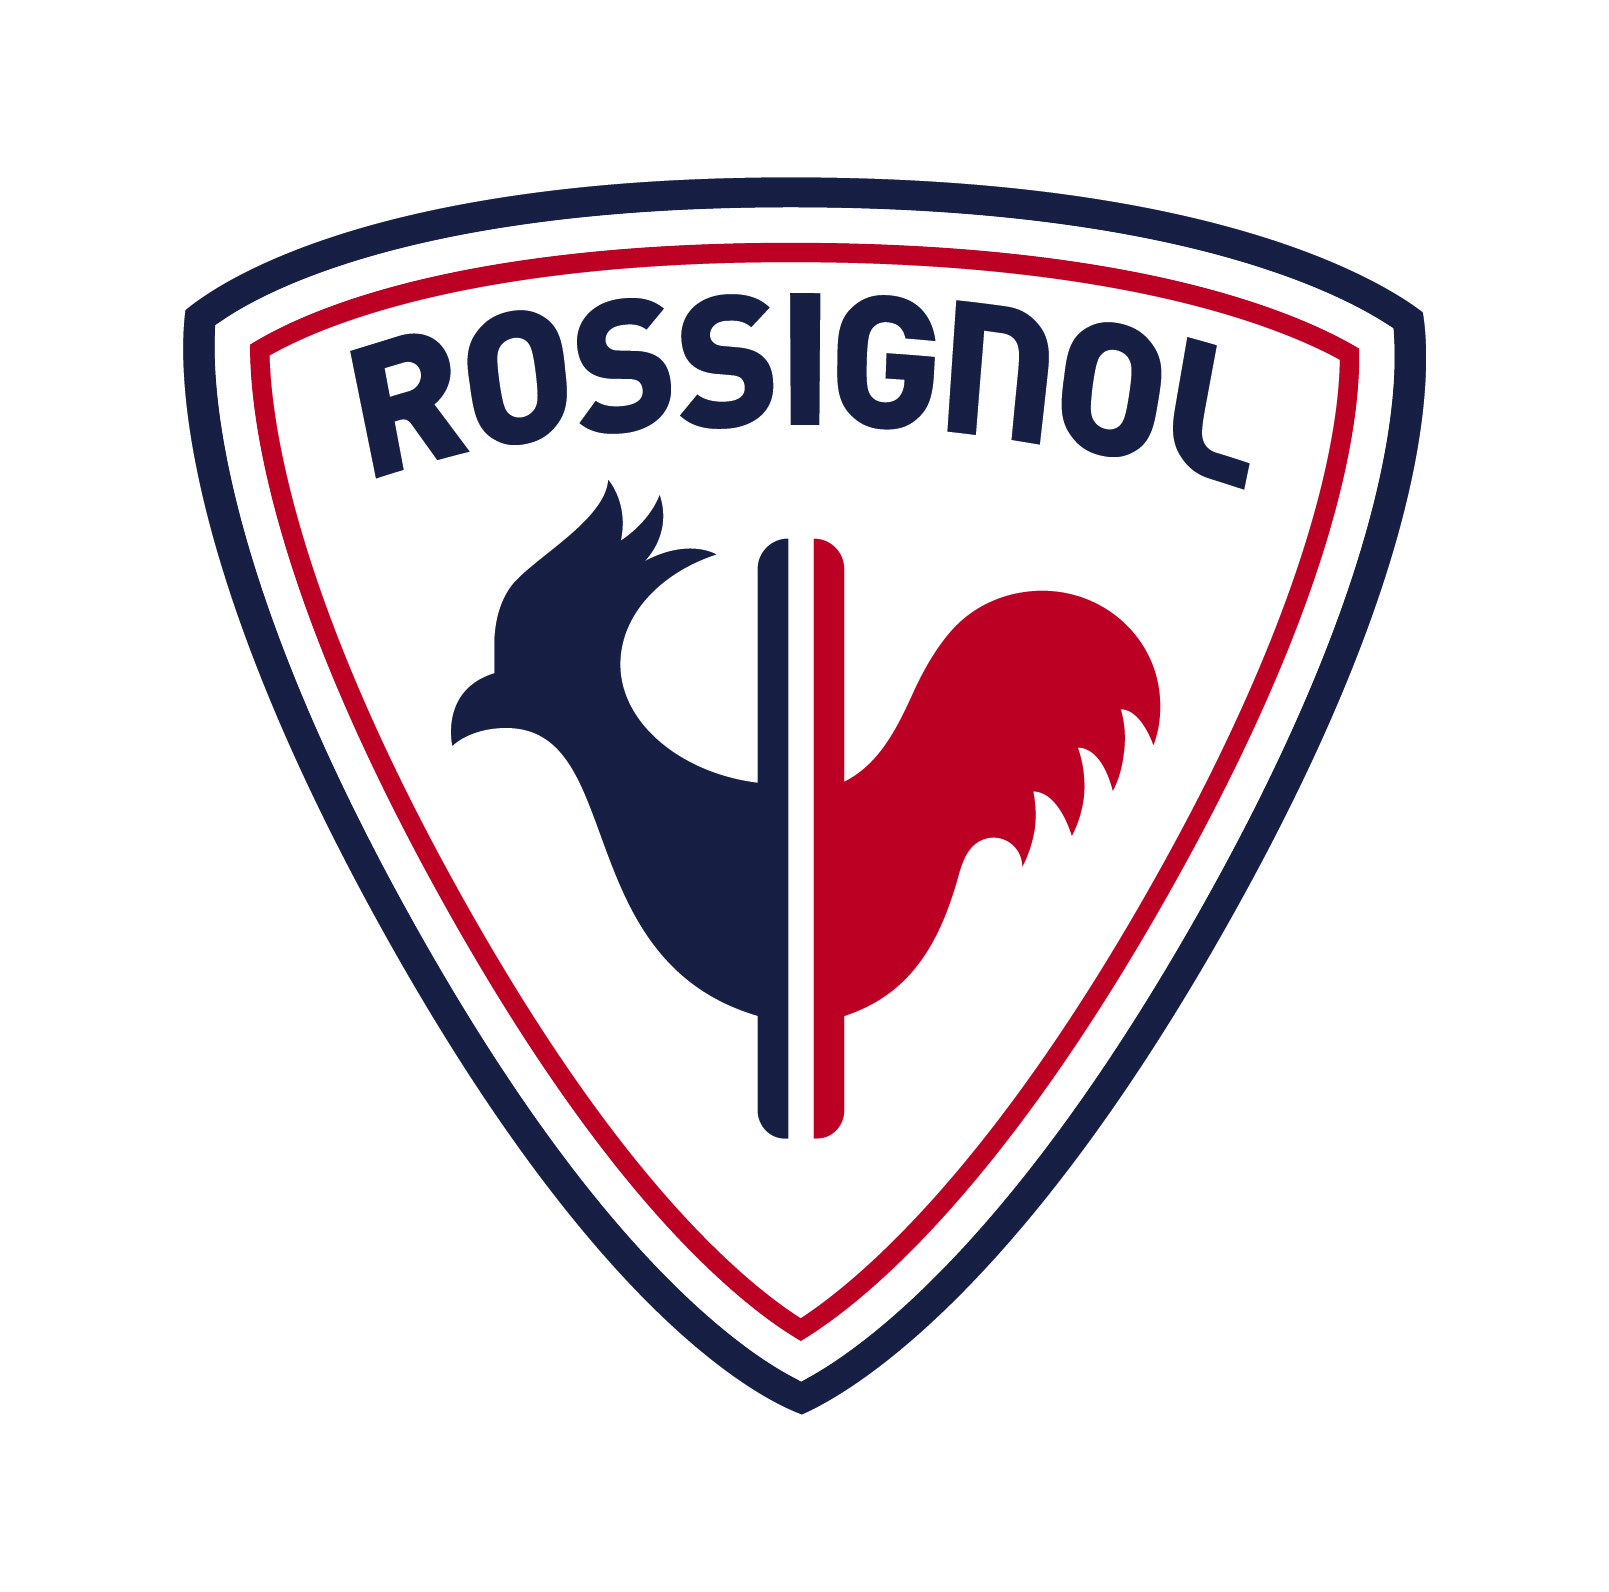 Rossignol group